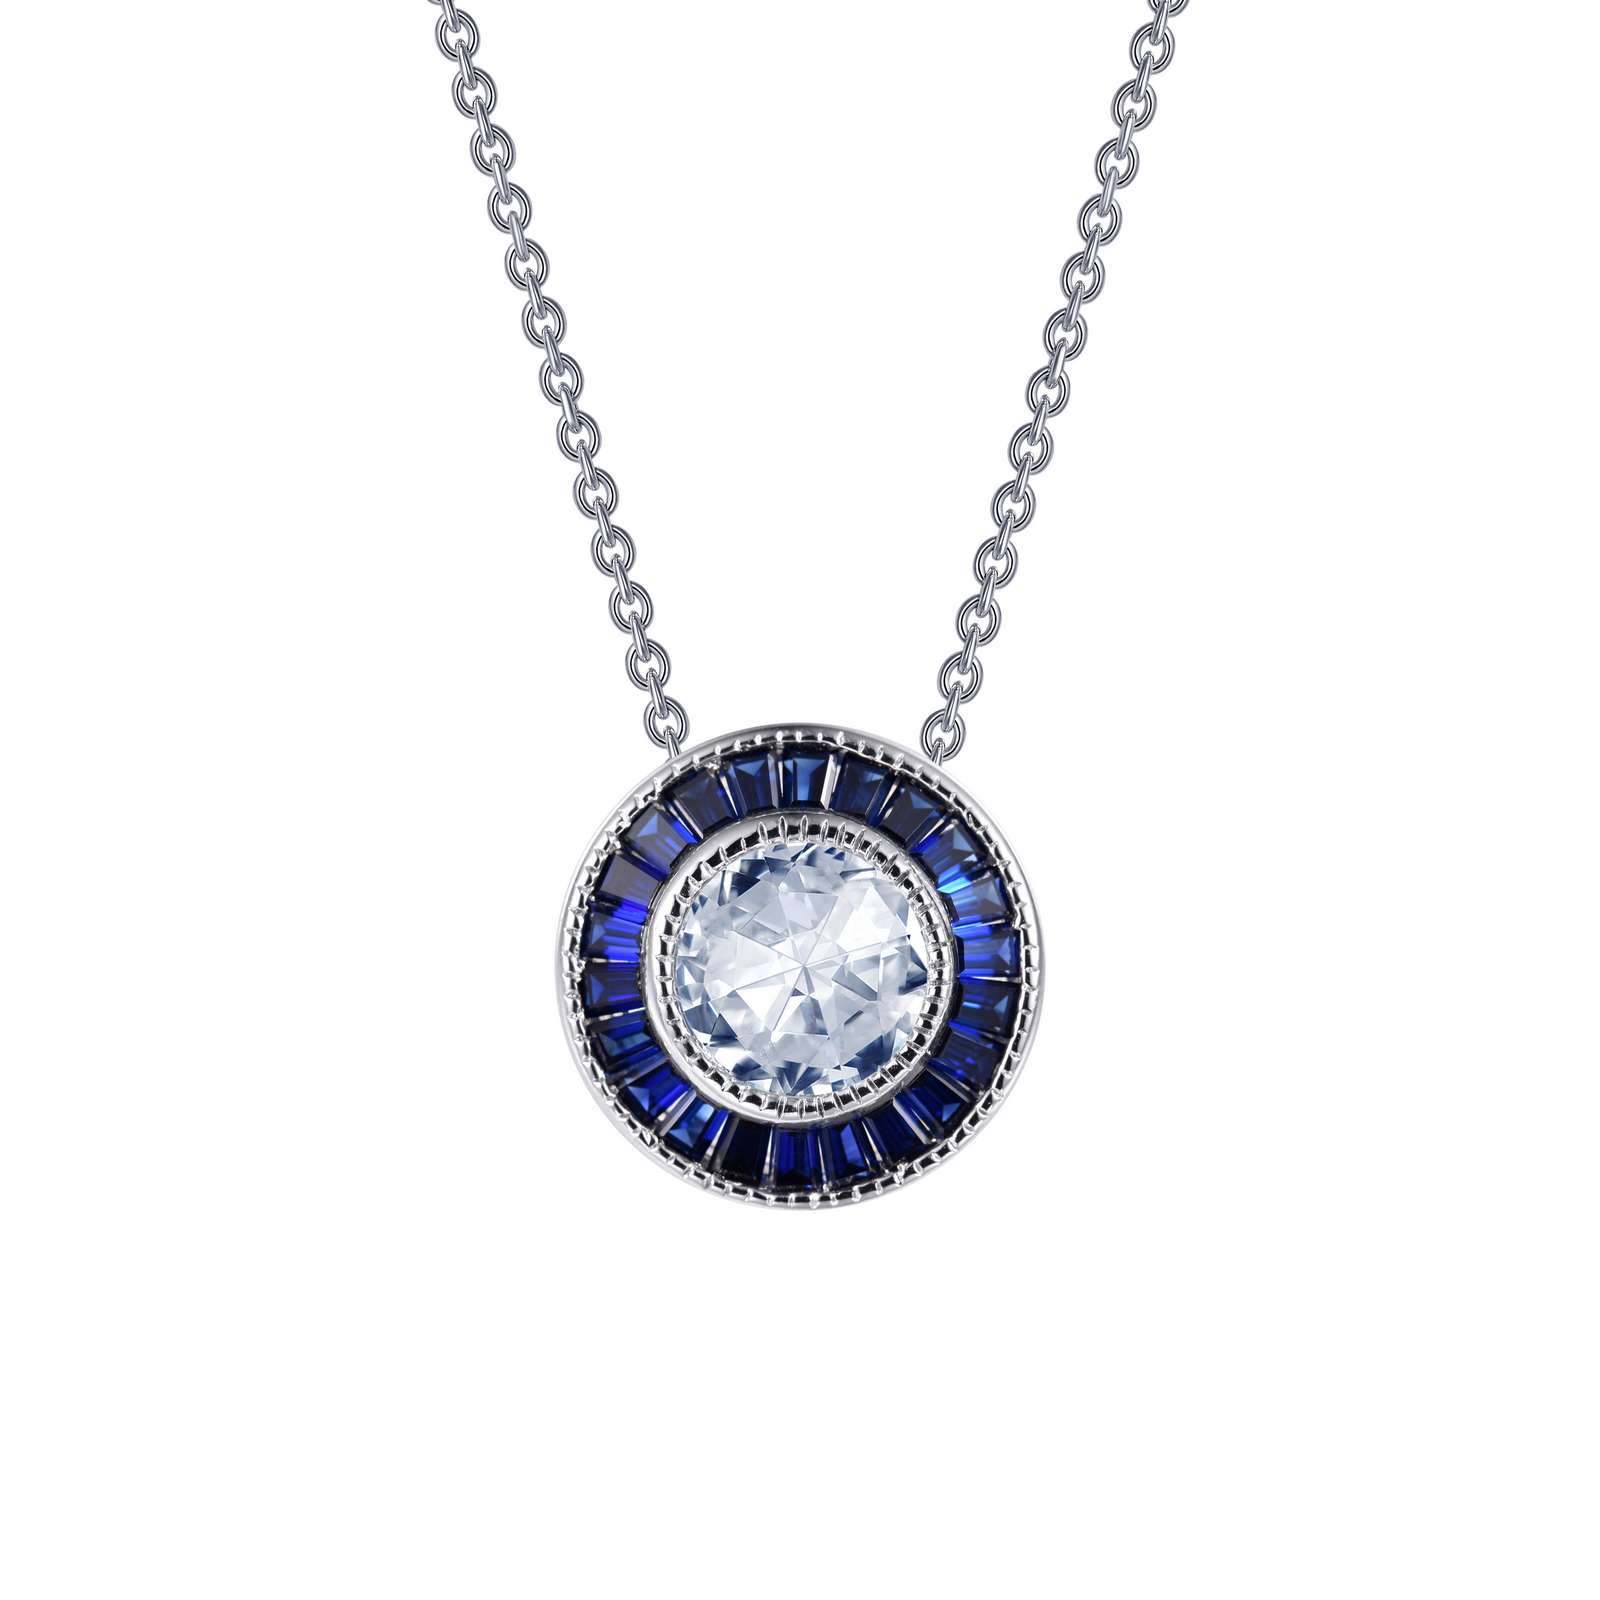 "A statement of elegance. This Art Deco inspired pendant is set with a Lassaire simulated diamond in the center, surrounded by channel-set baguette Lassaire lab-grown sapphires, in sterling silver bonded with platinum.The exquisite milgrain detail makes this beauty a breathtaking piece. The pendant comes on an adjustable 18"" chain."